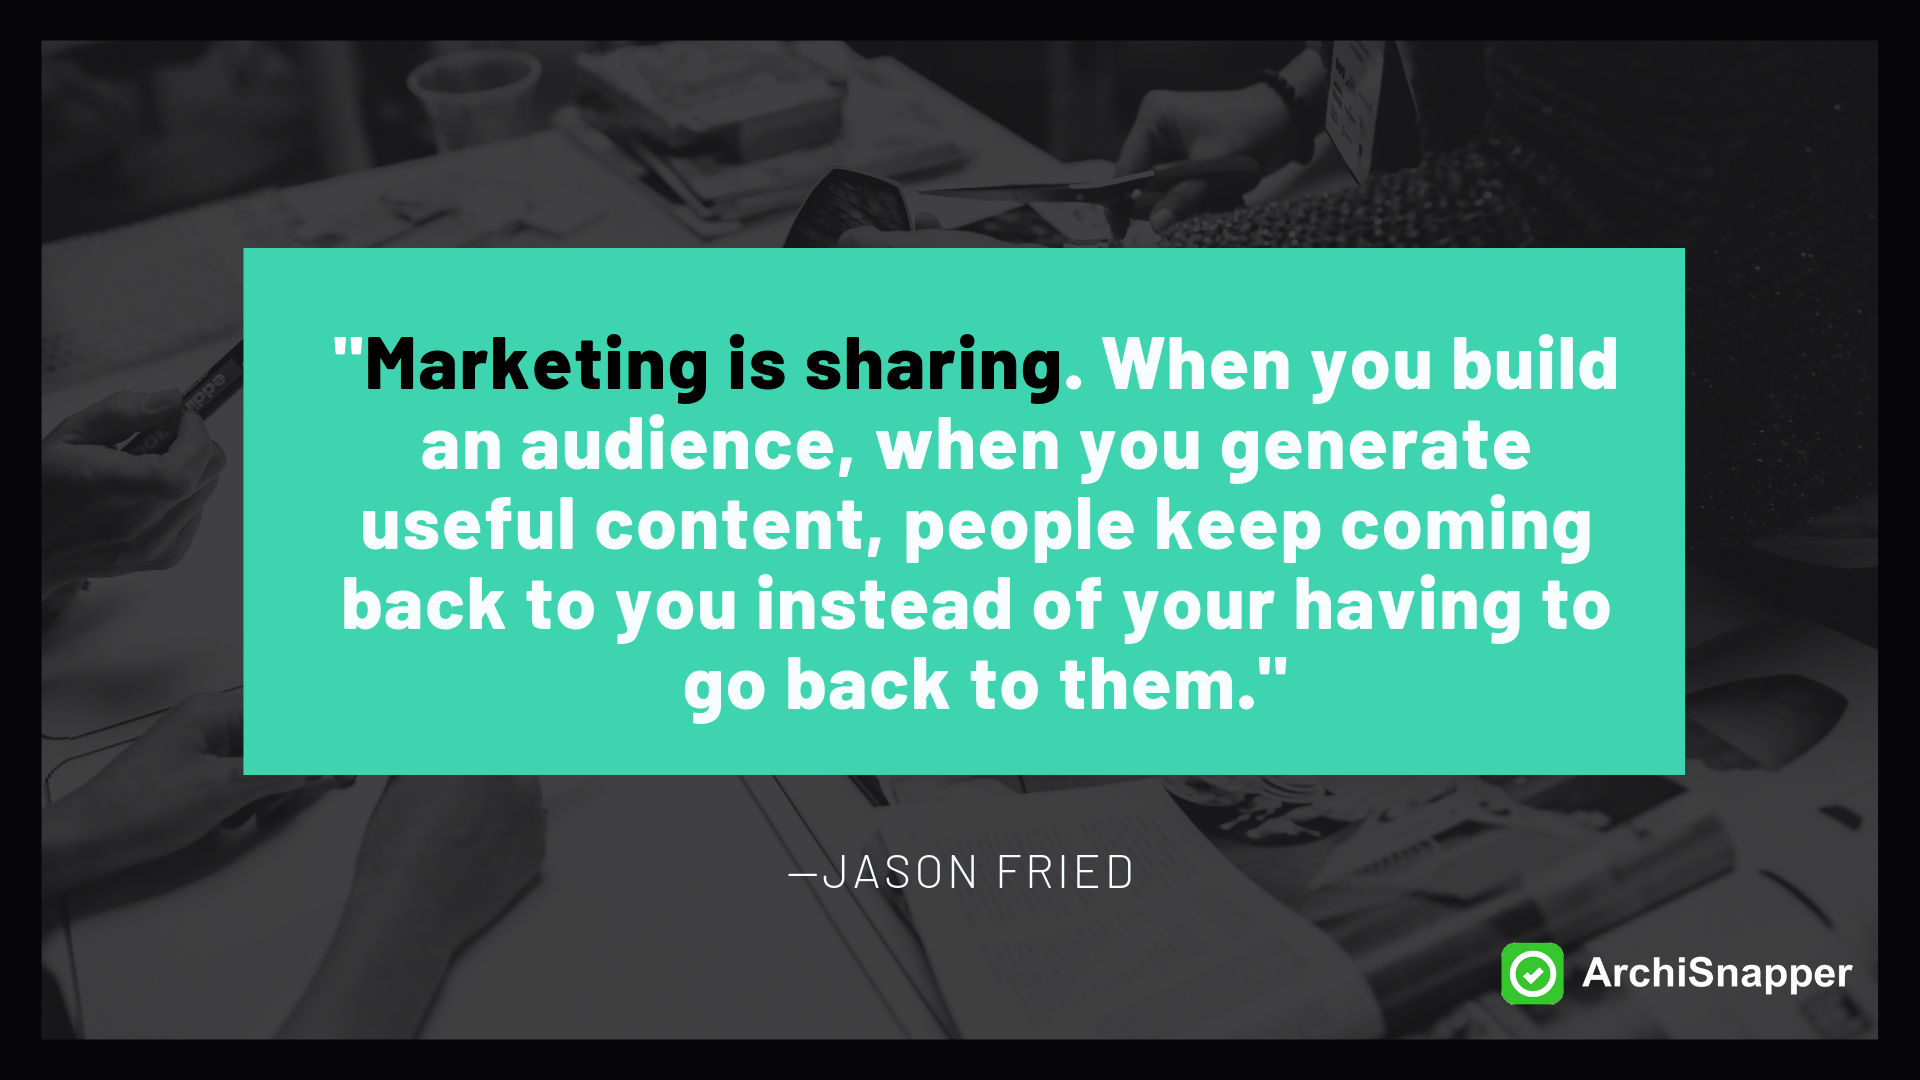 Marketing Content Marketing for Architects and Contractors | Marketing is Sharing